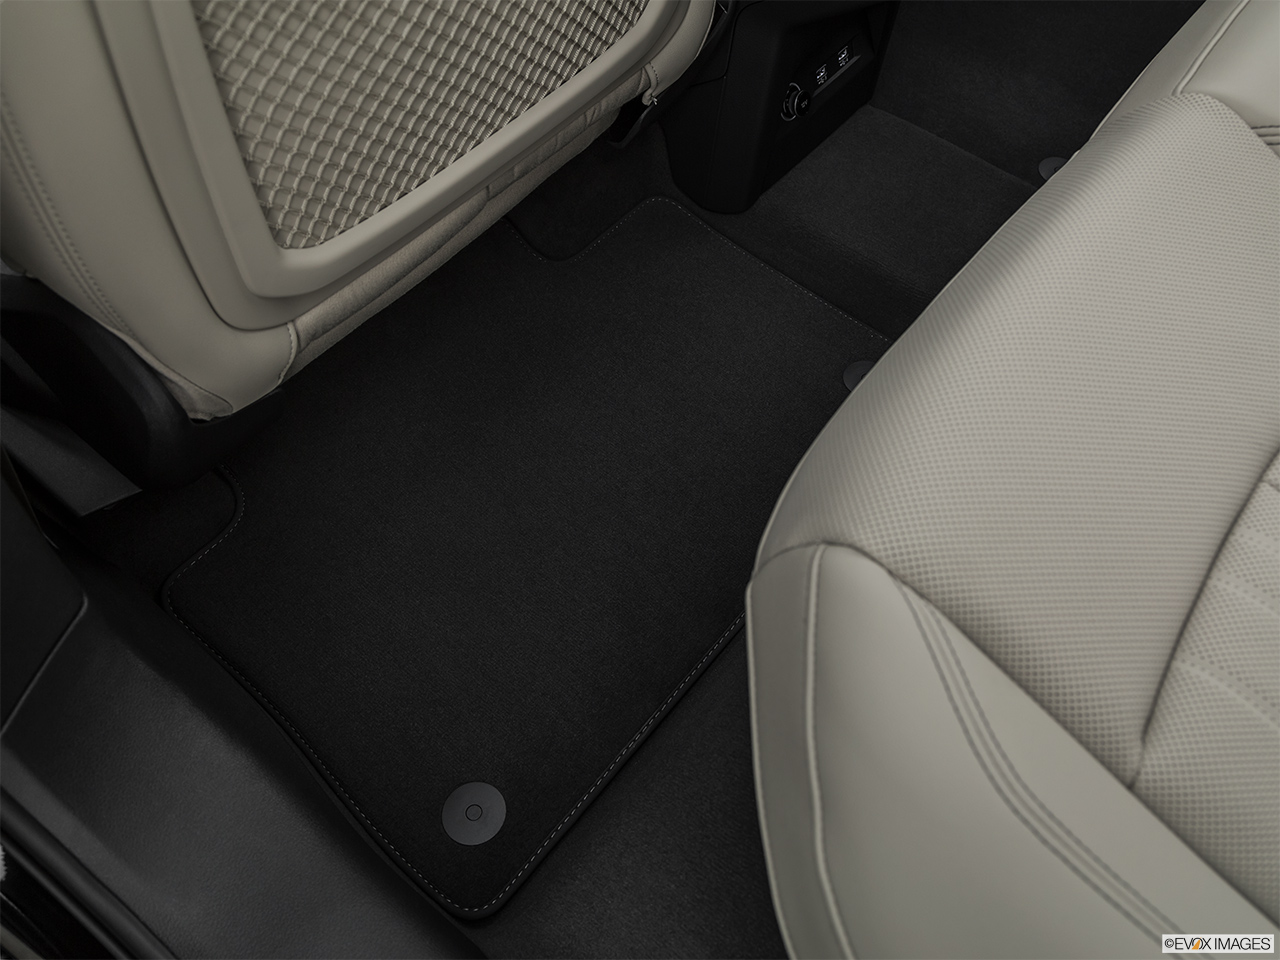 2019 Audi e-tron Premium Plus Rear driver's side floor mat. Mid-seat level from outside looking in.